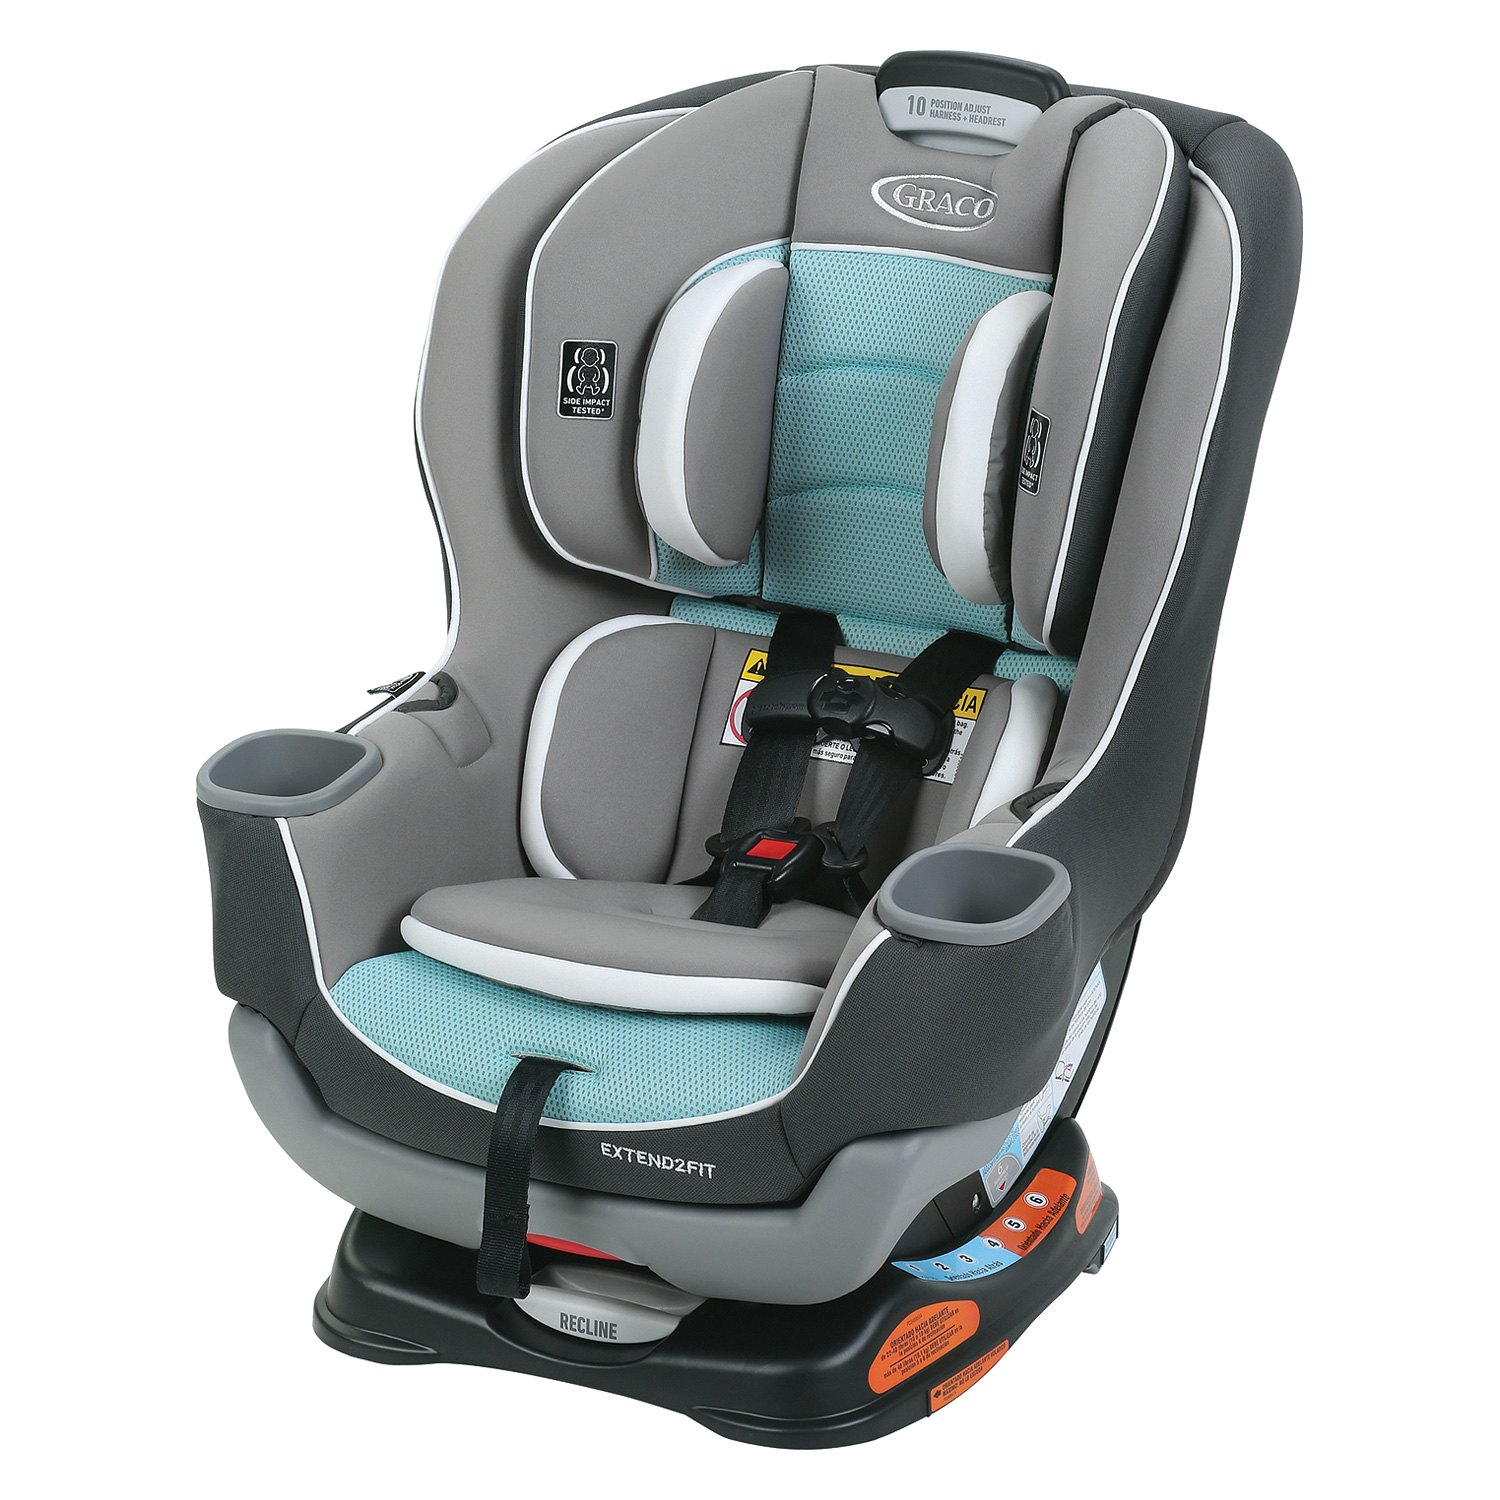 graco baby extend2fit convertible car seat. Black Bedroom Furniture Sets. Home Design Ideas